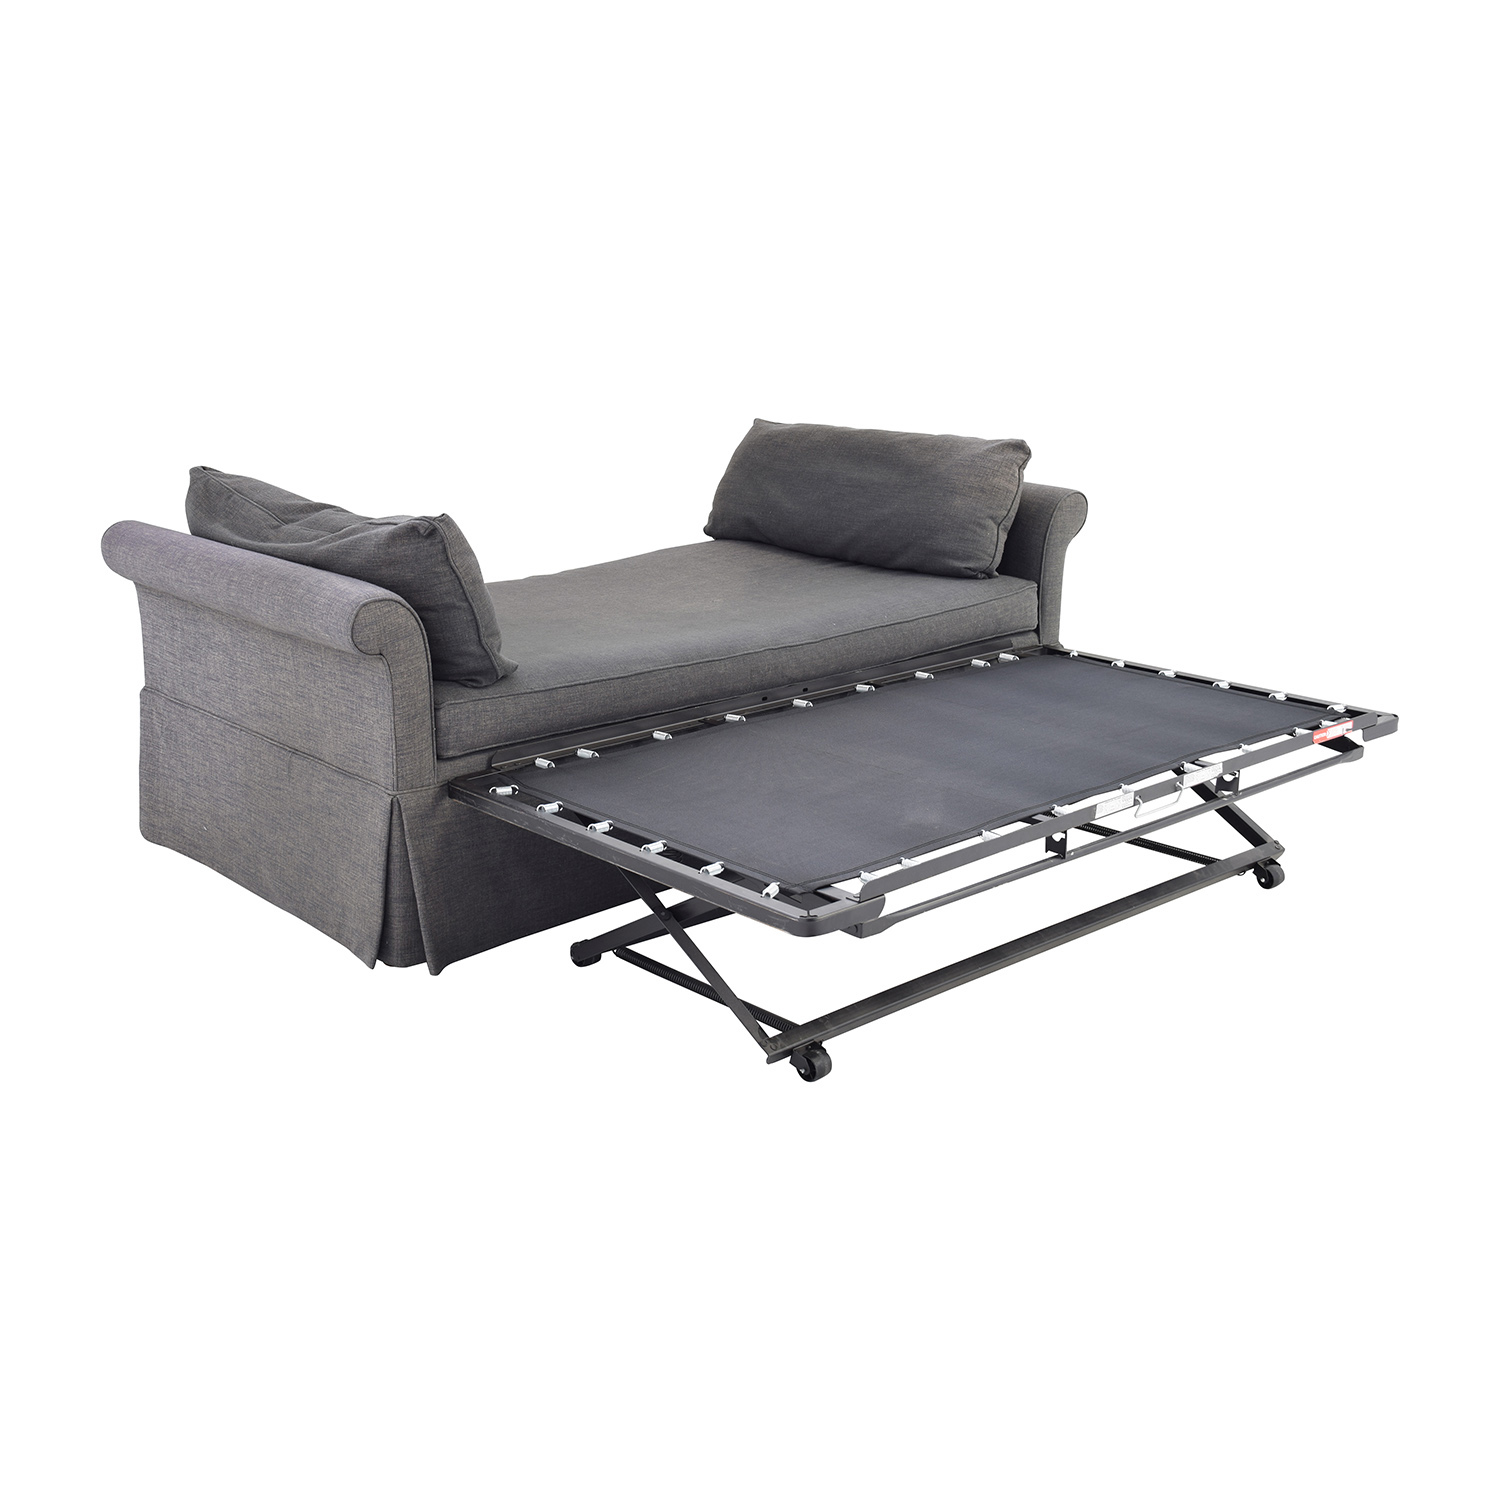 53% OFF Lillian August Lillian August Grey Sofa Day Bed with